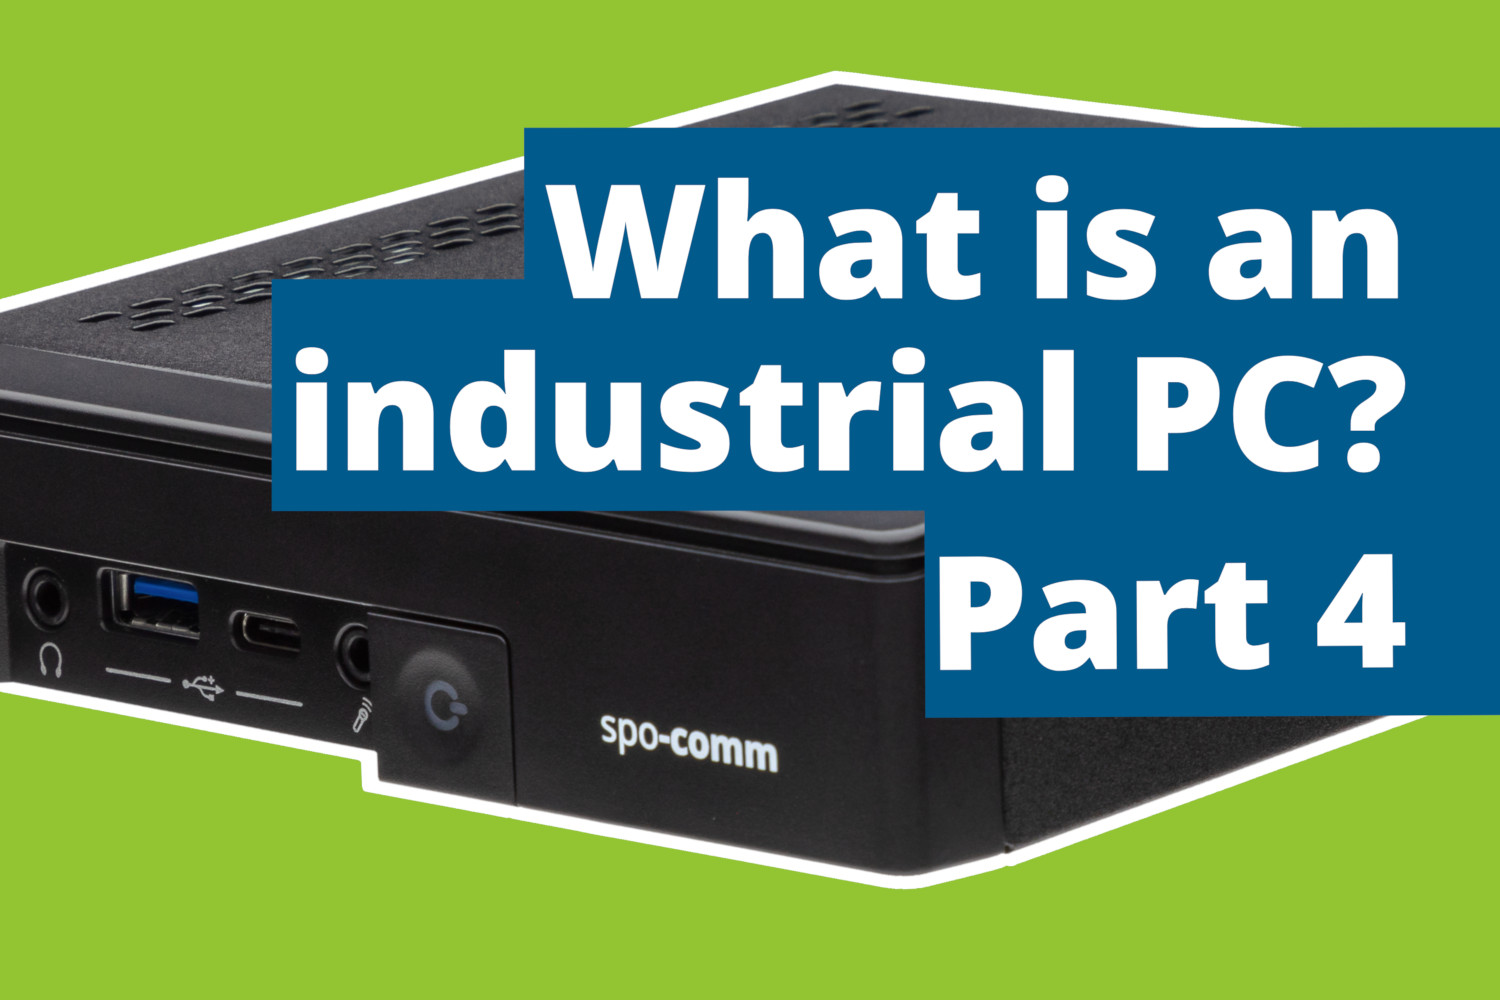 Industrial PCs part 4: Compact design